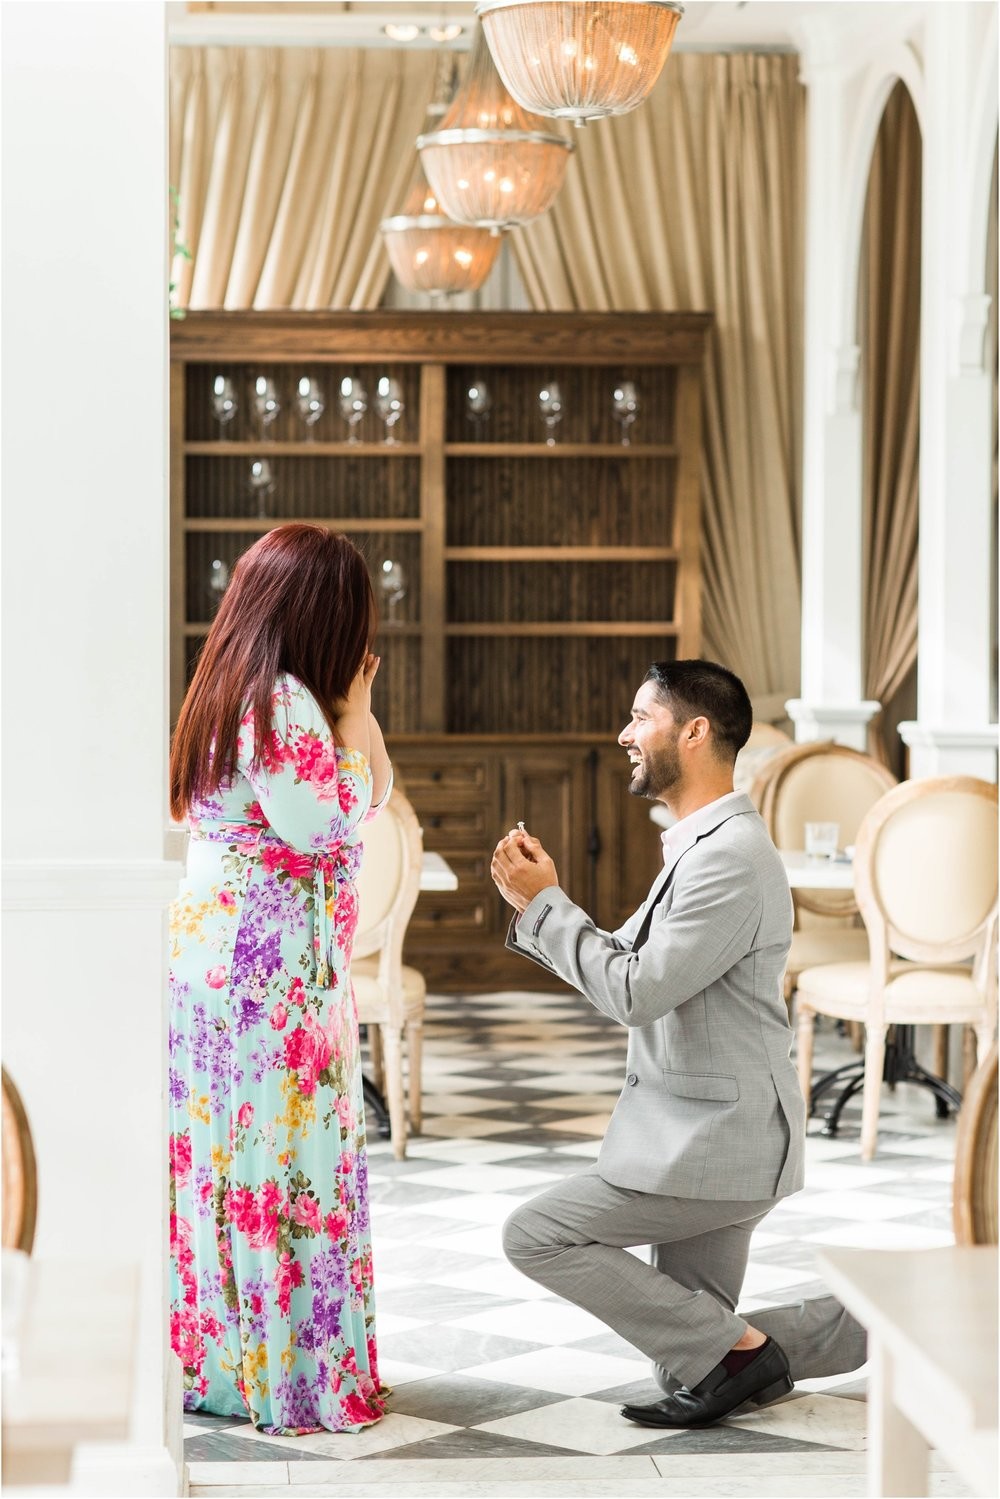 Colette-Grand-Cafe-Thompson-Hotel-Osgoode-Hall-Engagement-Session-Toronto-Mississauga-Brampton-Scarborough-GTA-Pakistani-Indian-Wedding-Engagement-Photographer-Photography_0010.jpg